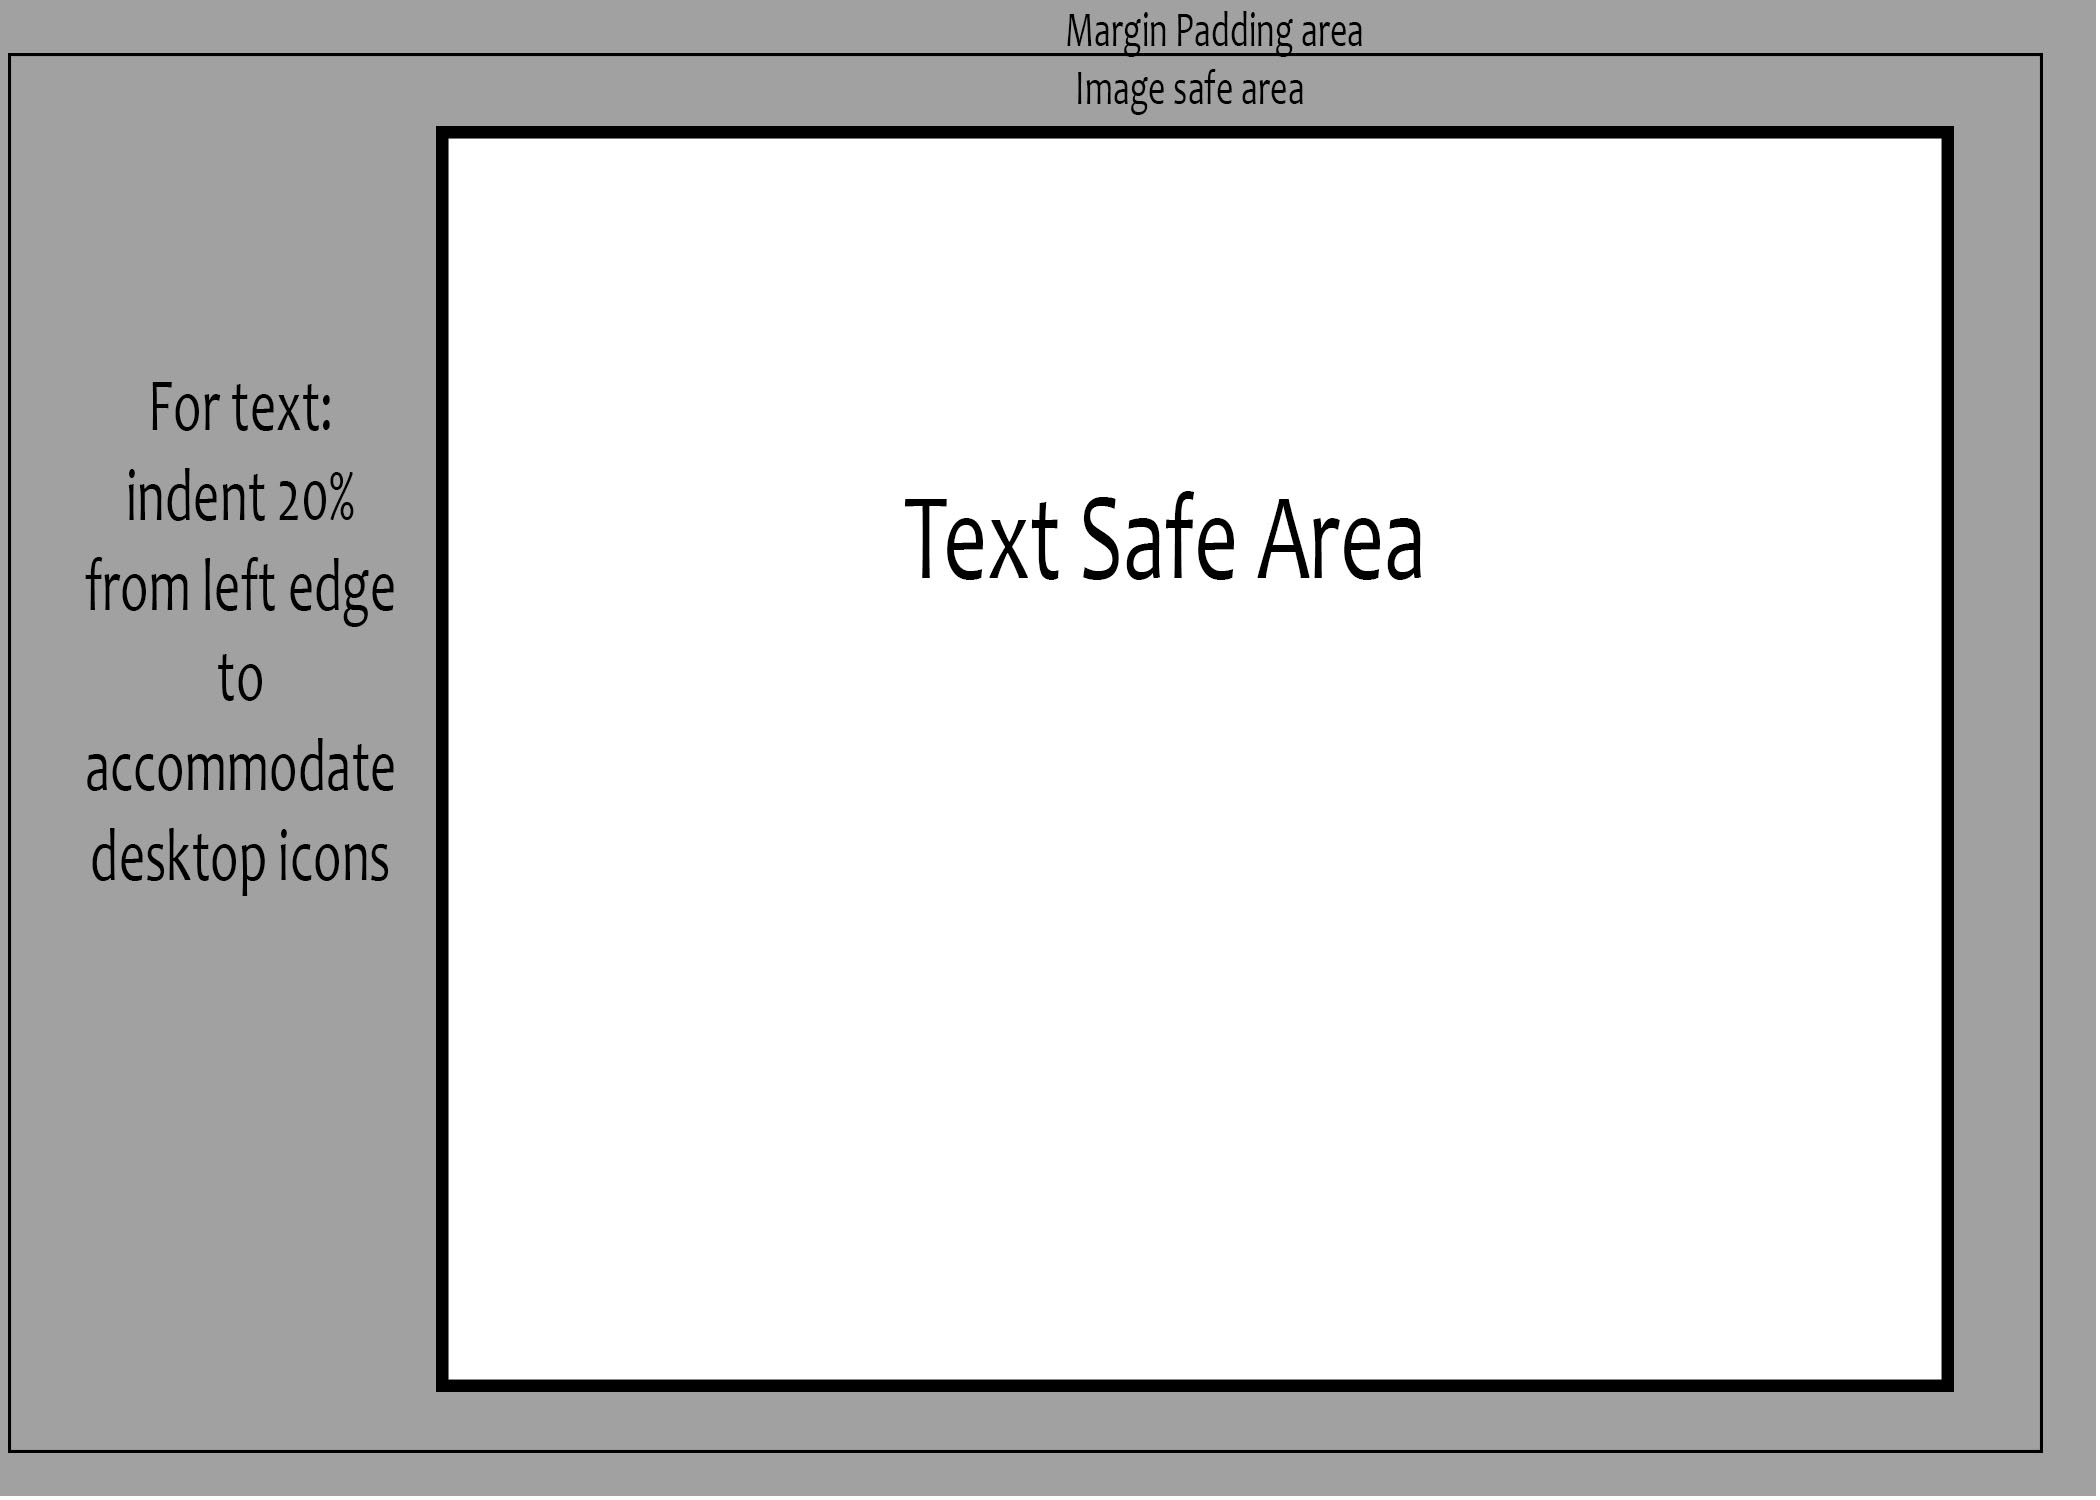 Diagram of safe text area in relation to screen size leaving a 20% padding on the left hand side.